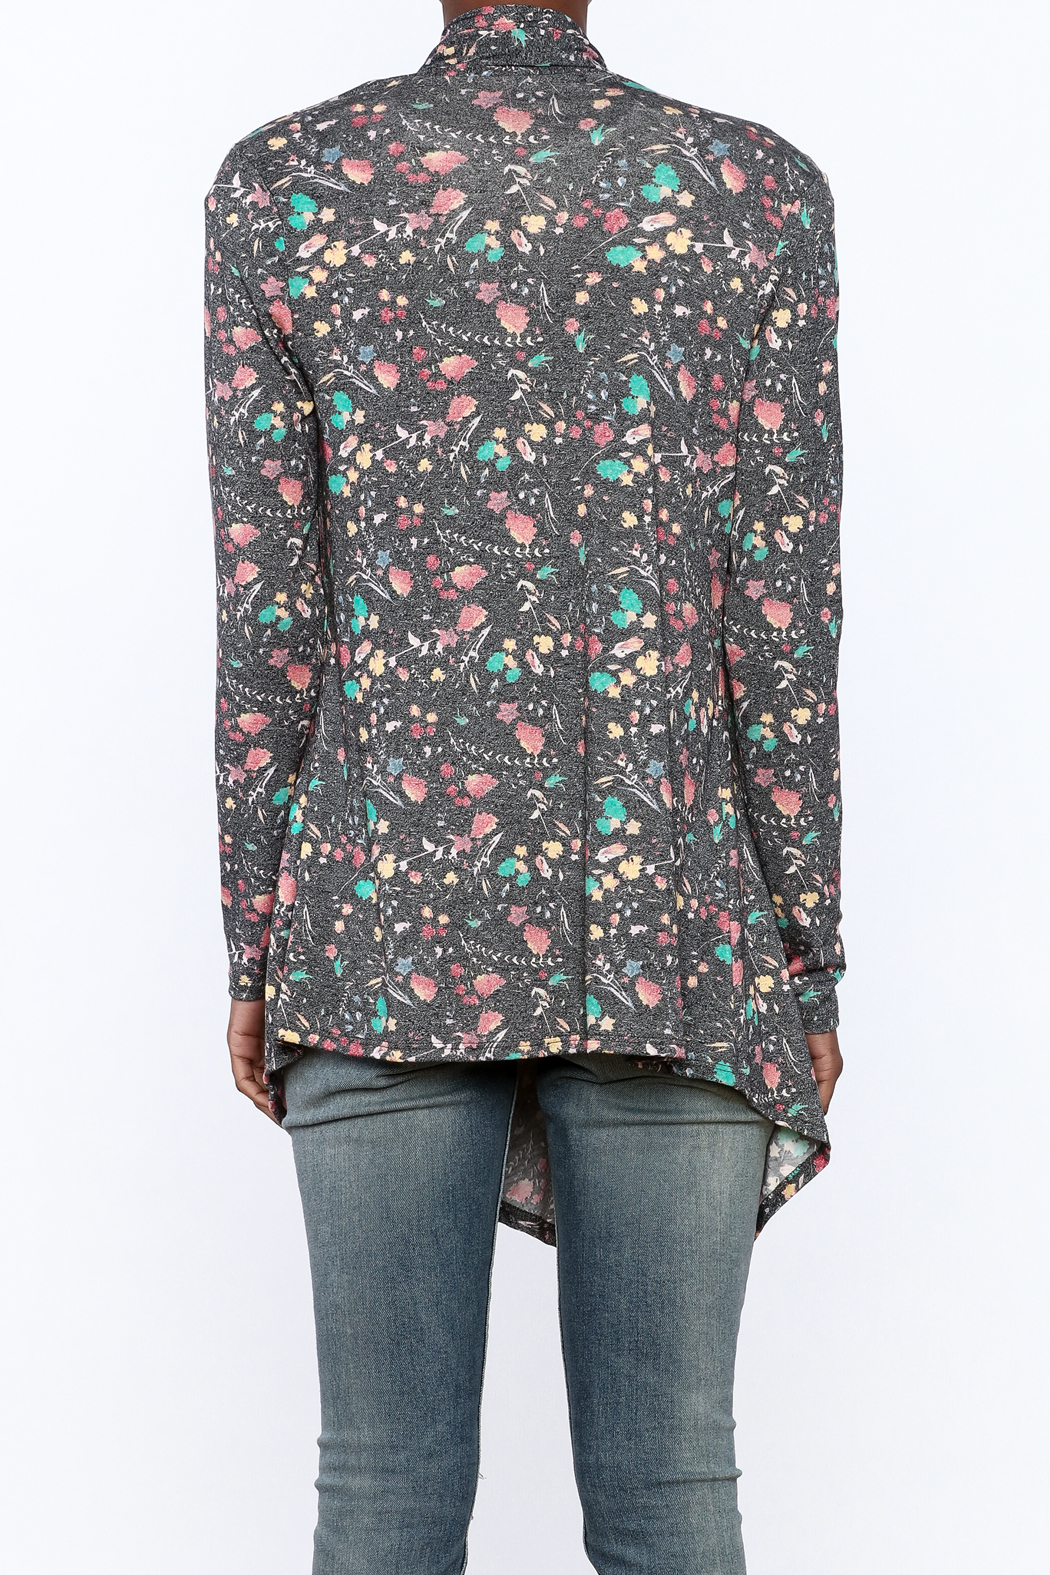 12pm by Mon Ami Grey Floral Print Cardigan - Back Cropped Image